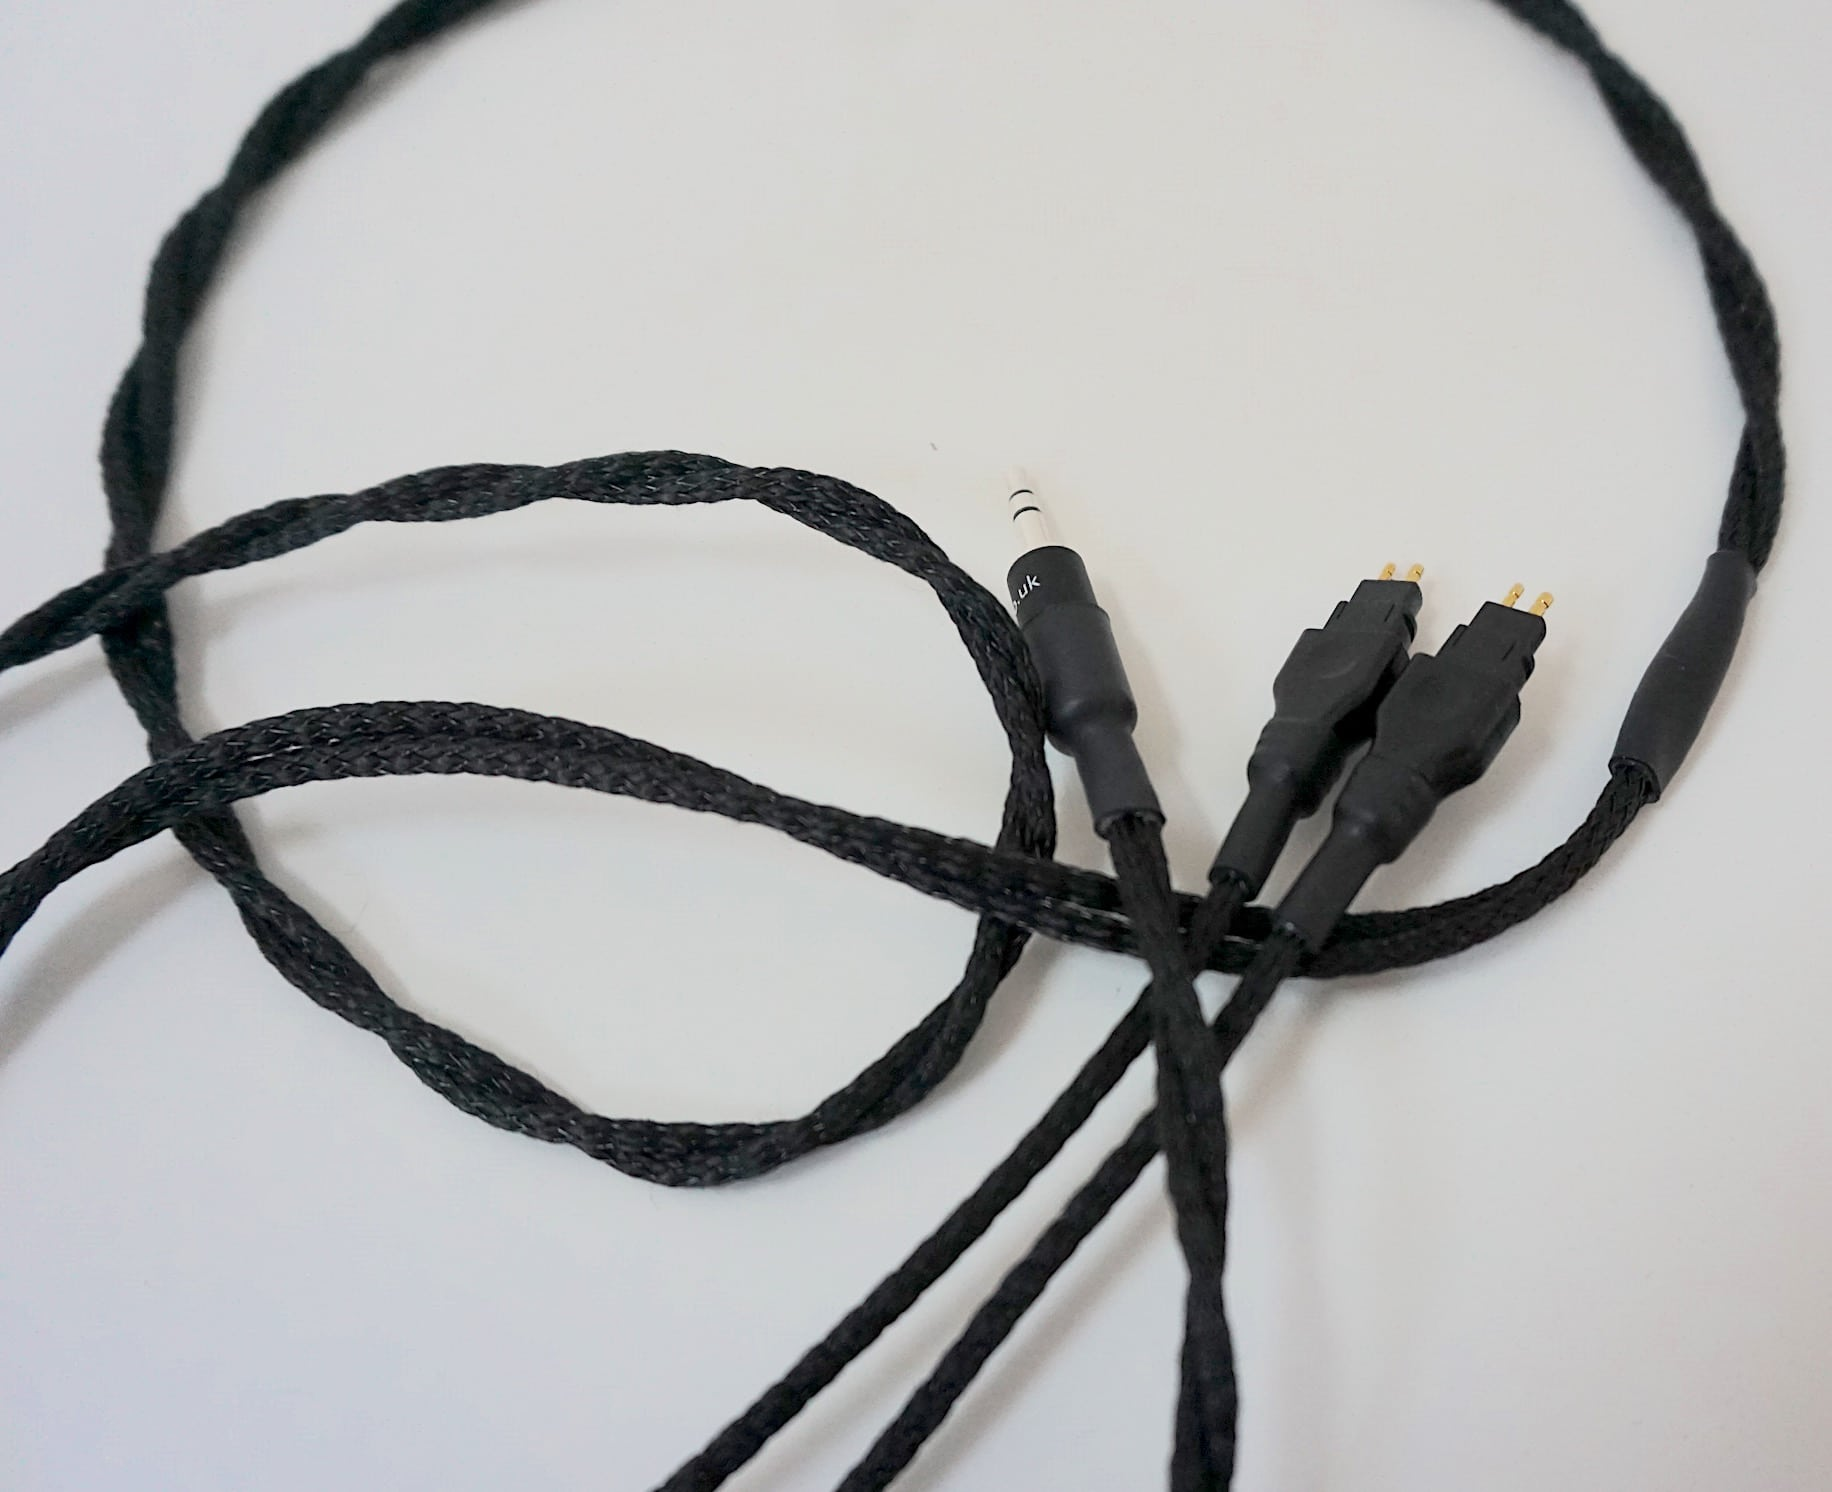 ShawCan Headphone Cables from Chord